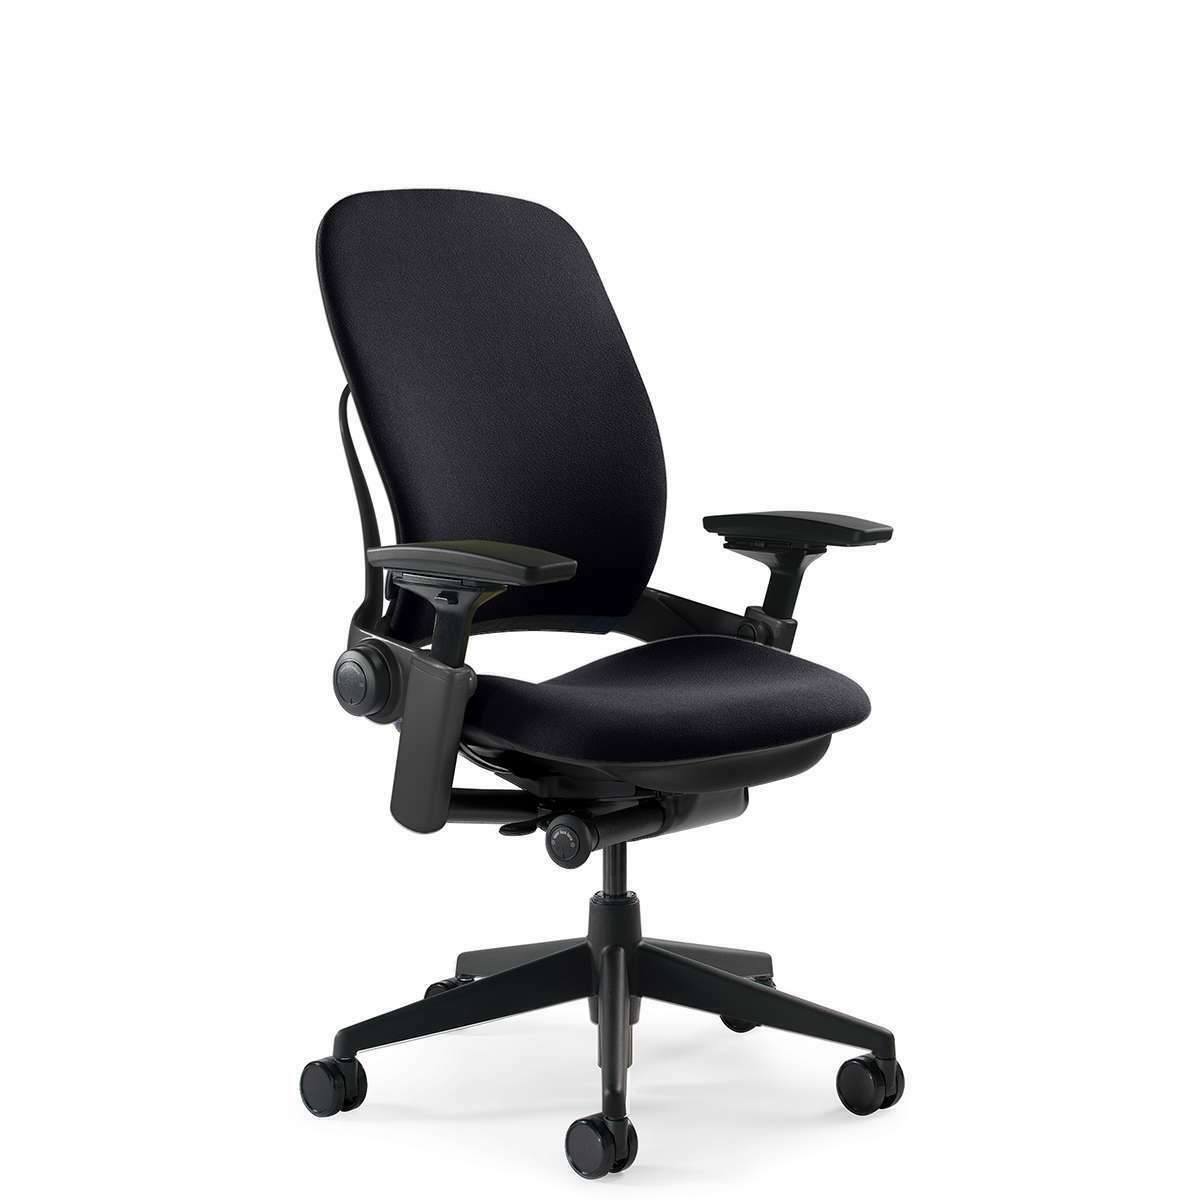 Steelcase Leap v47 Office Chair - Black Fabric